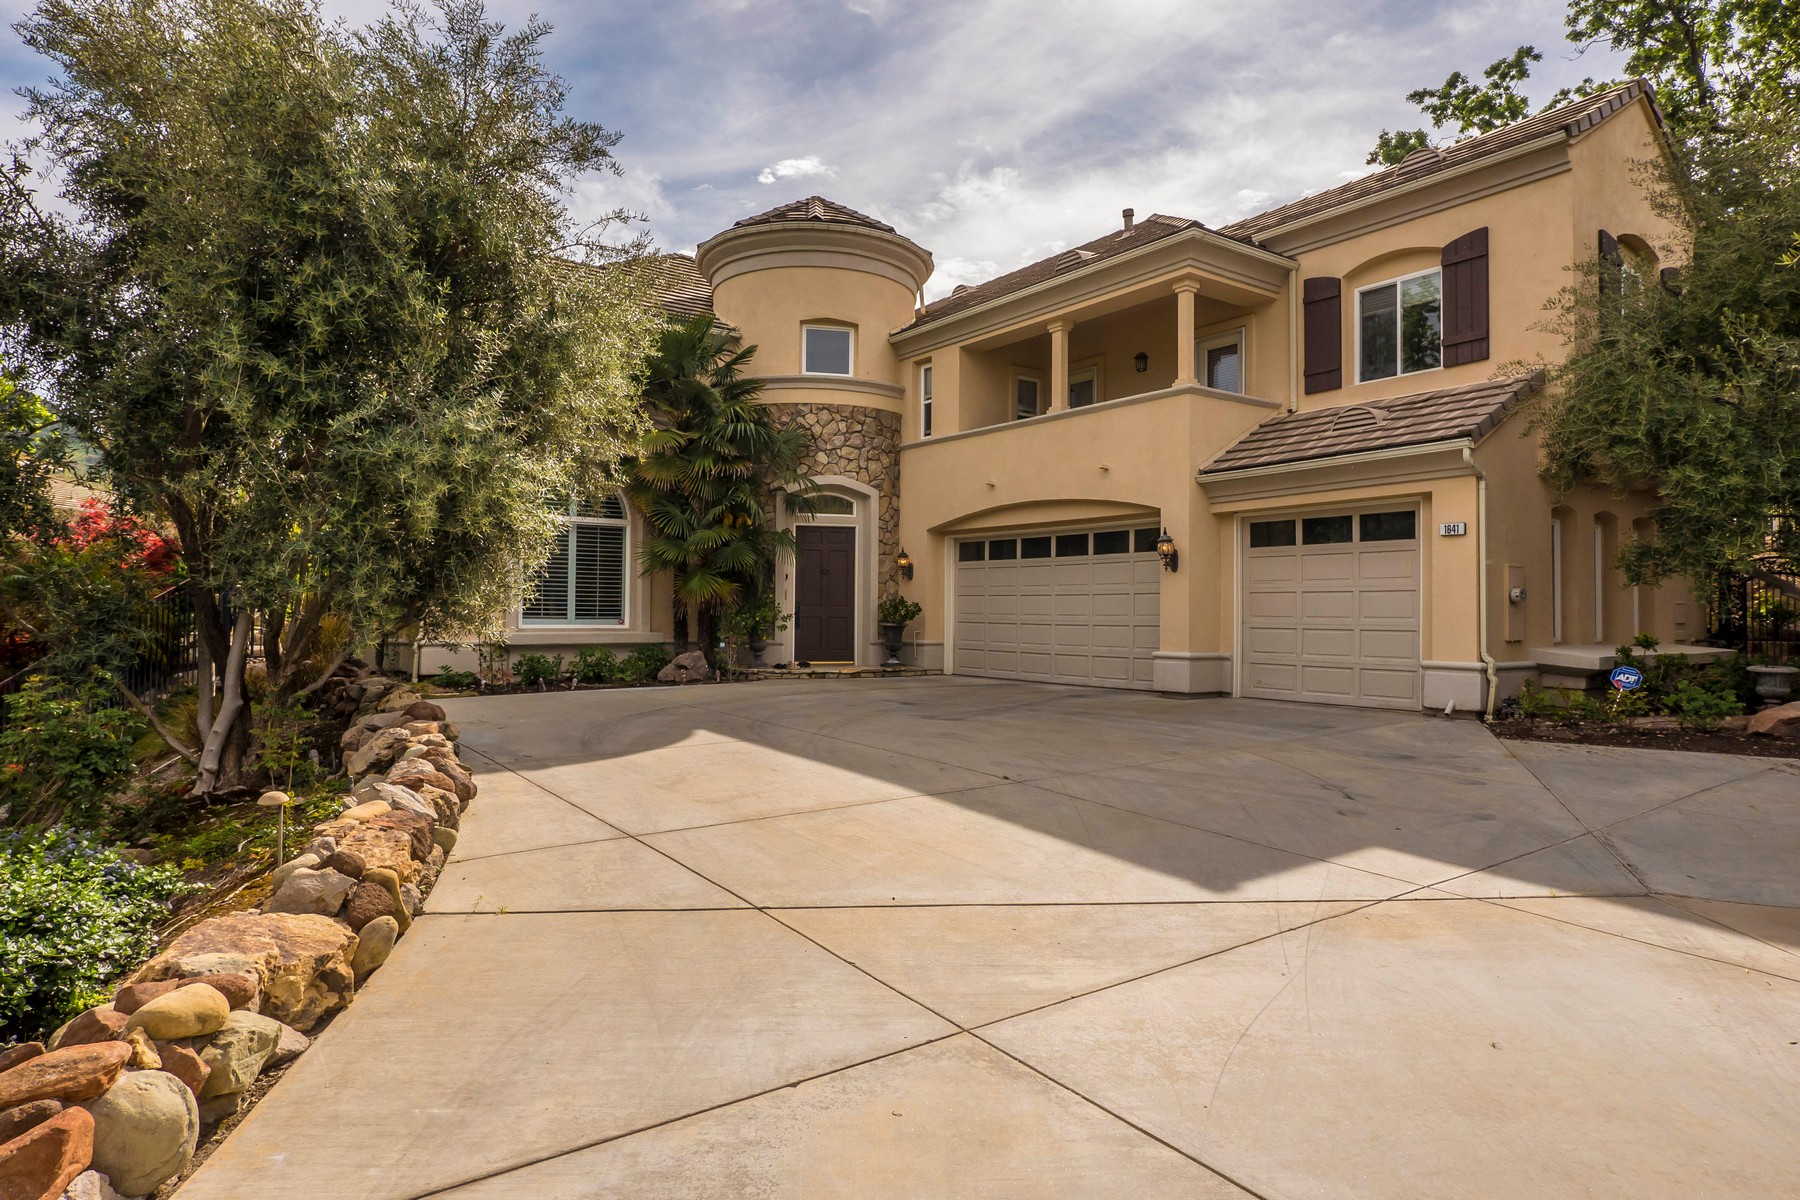 Single Family Home for Sale at Vista Oaks Way 1641 Vista Oaks Way Westlake Village, California, 91361 United States